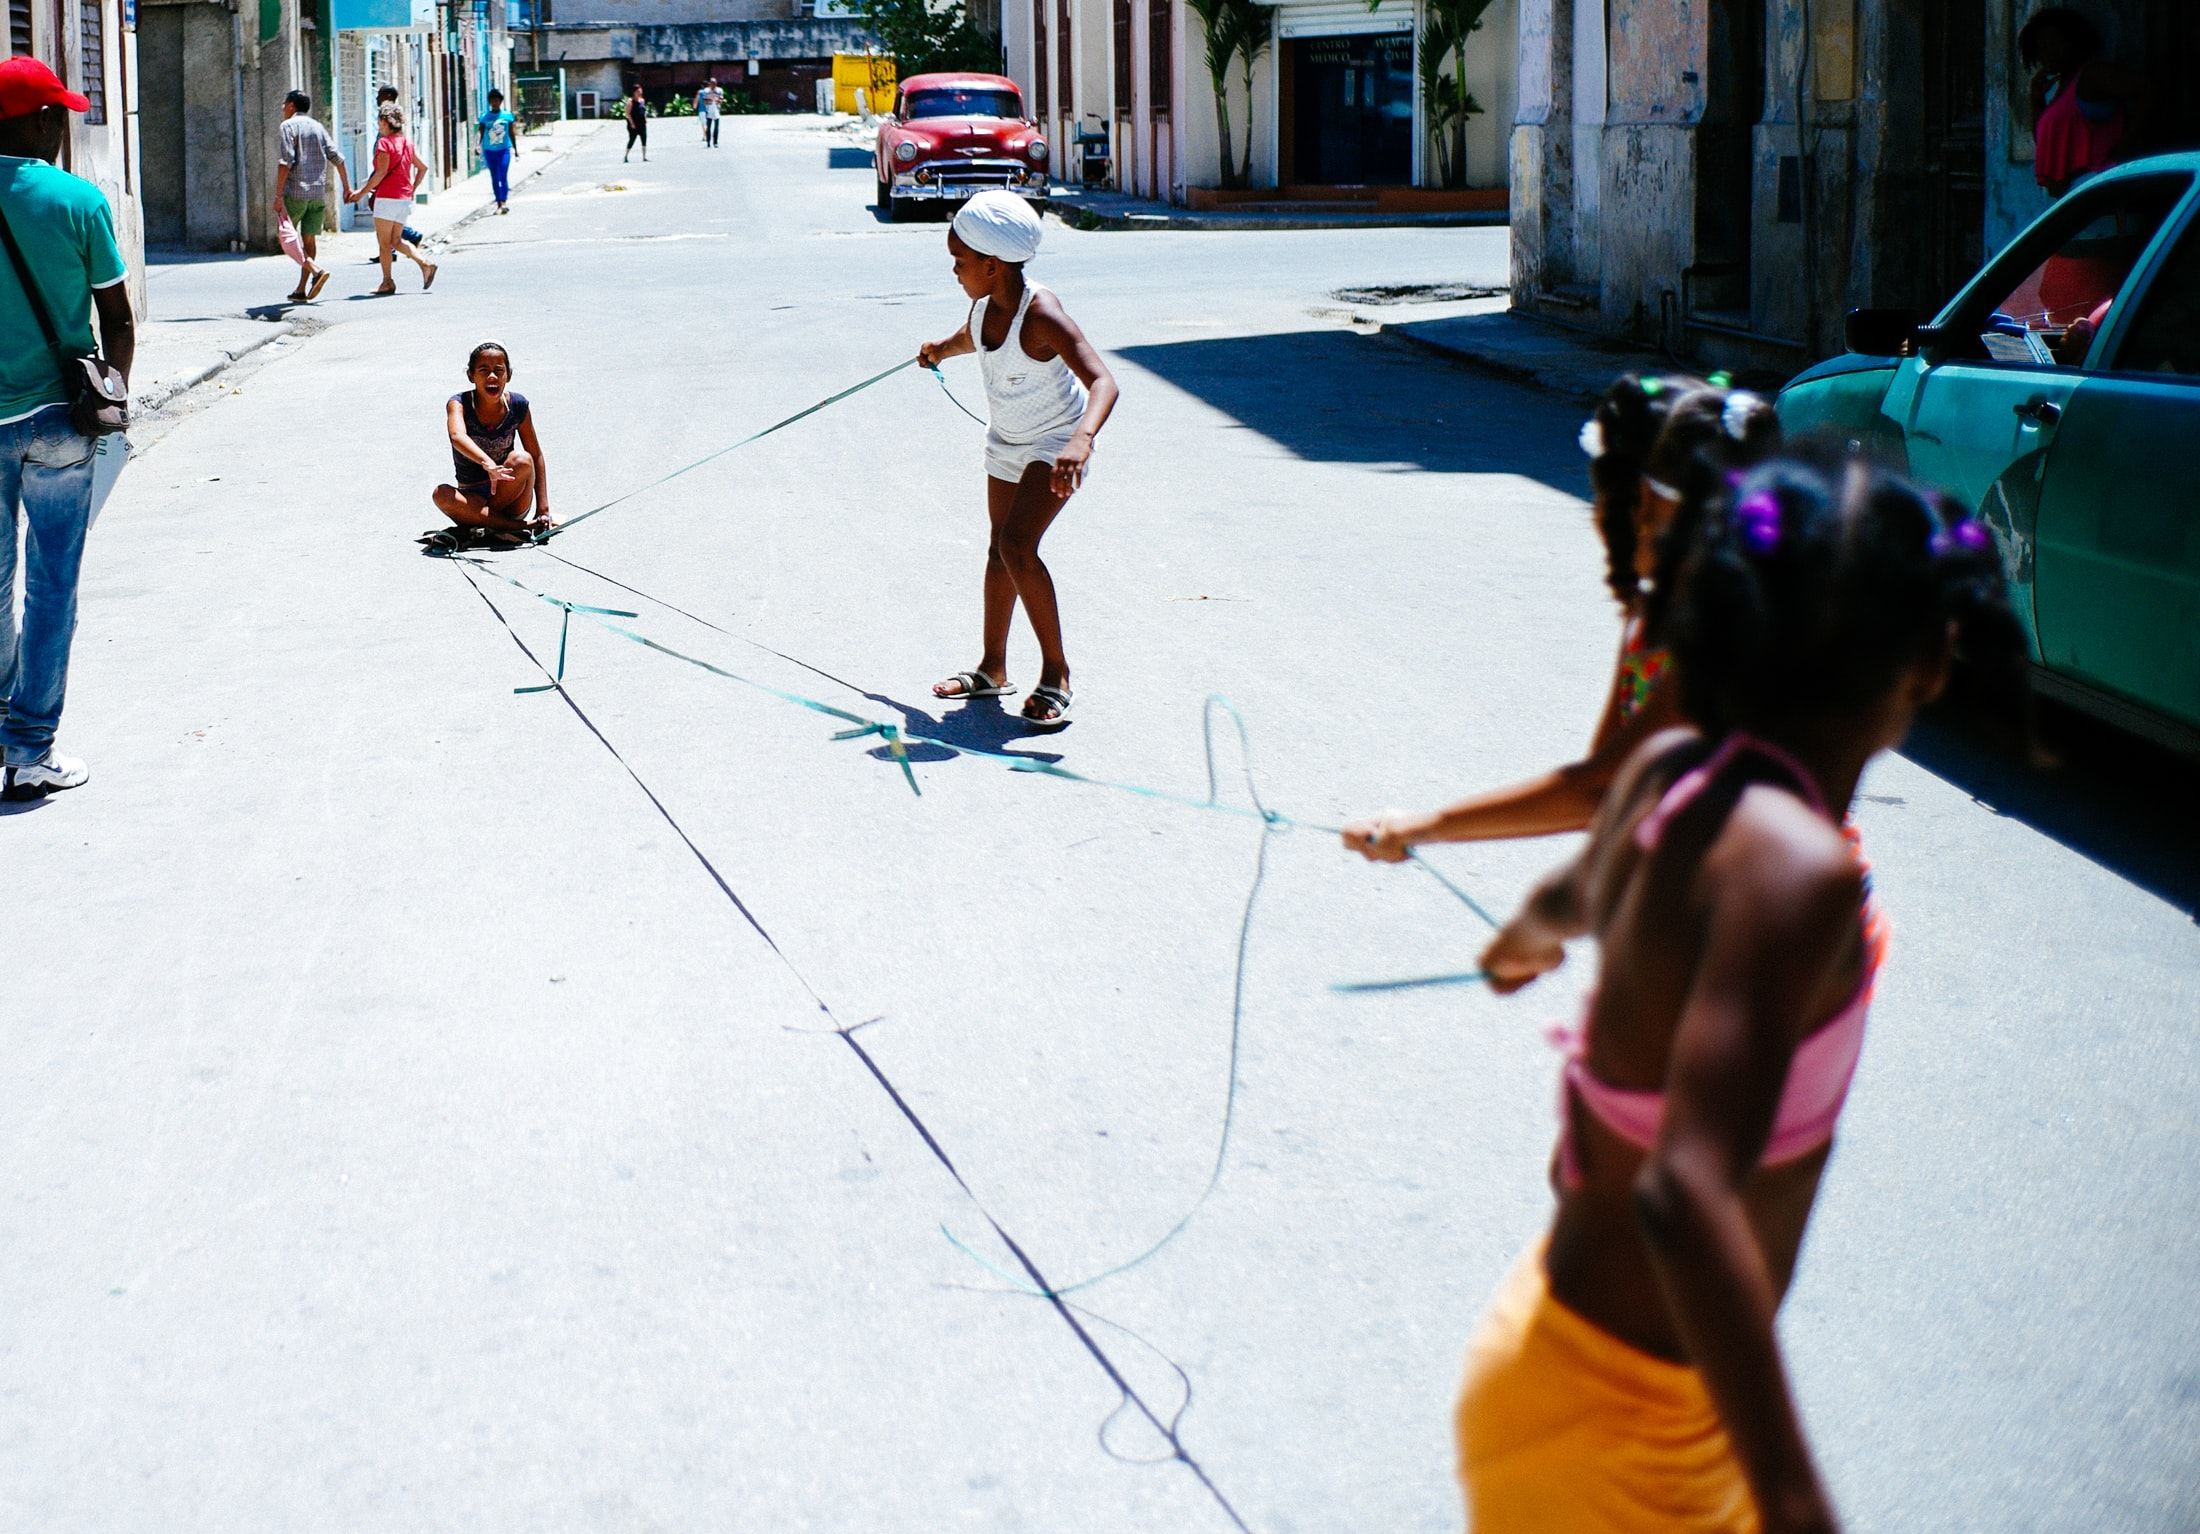 Three children playing with a string in the streets of Havana